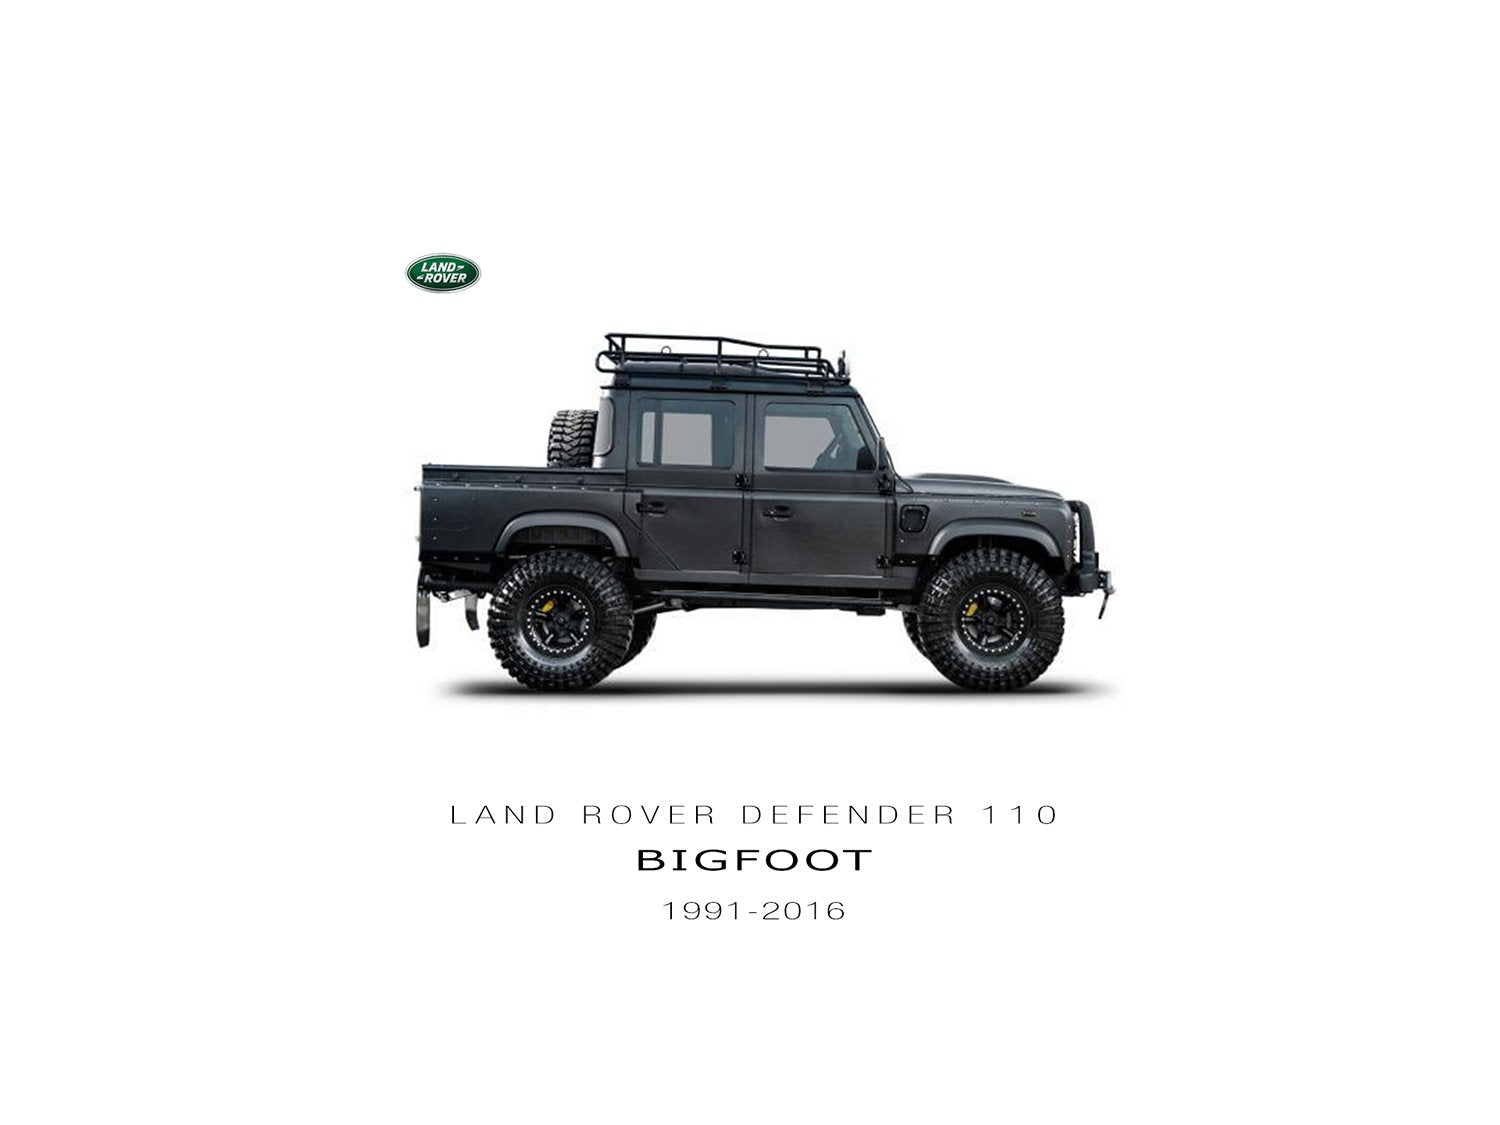 Land Rover Defender 110 (1991-2016) Bigfoot Tailored Conversion by Chelsea Truck Company - Image 851